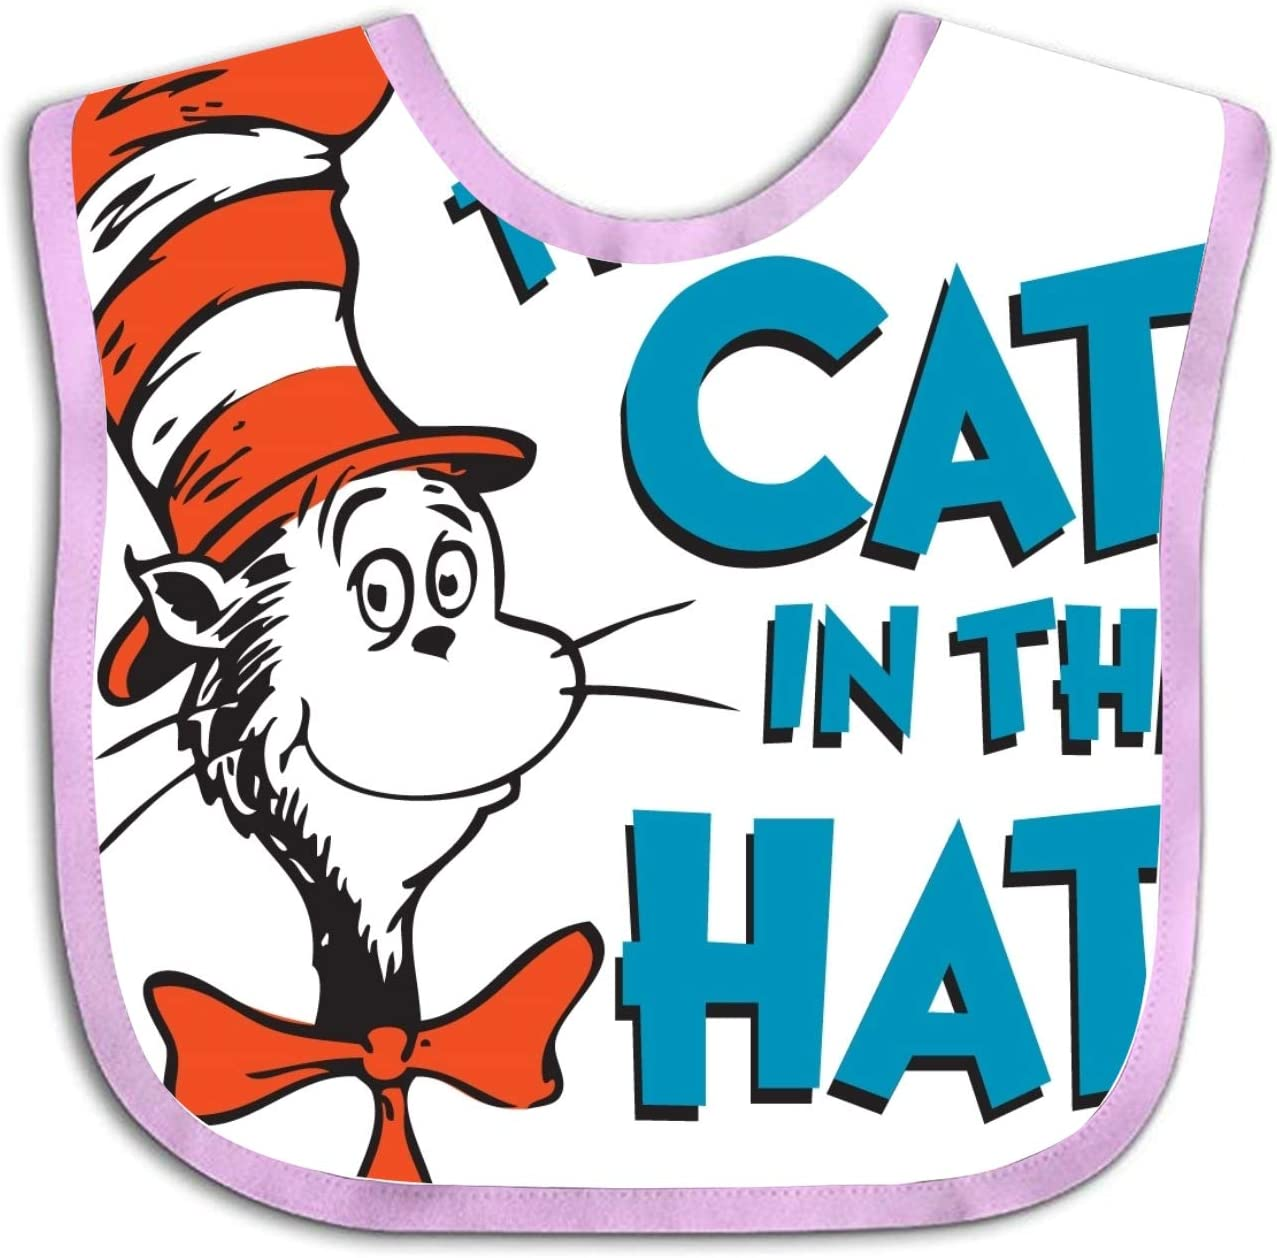 The Cat In The Hat Baby Bibs for Boys Baby Bandana Drool Bibs Drooling and Teething